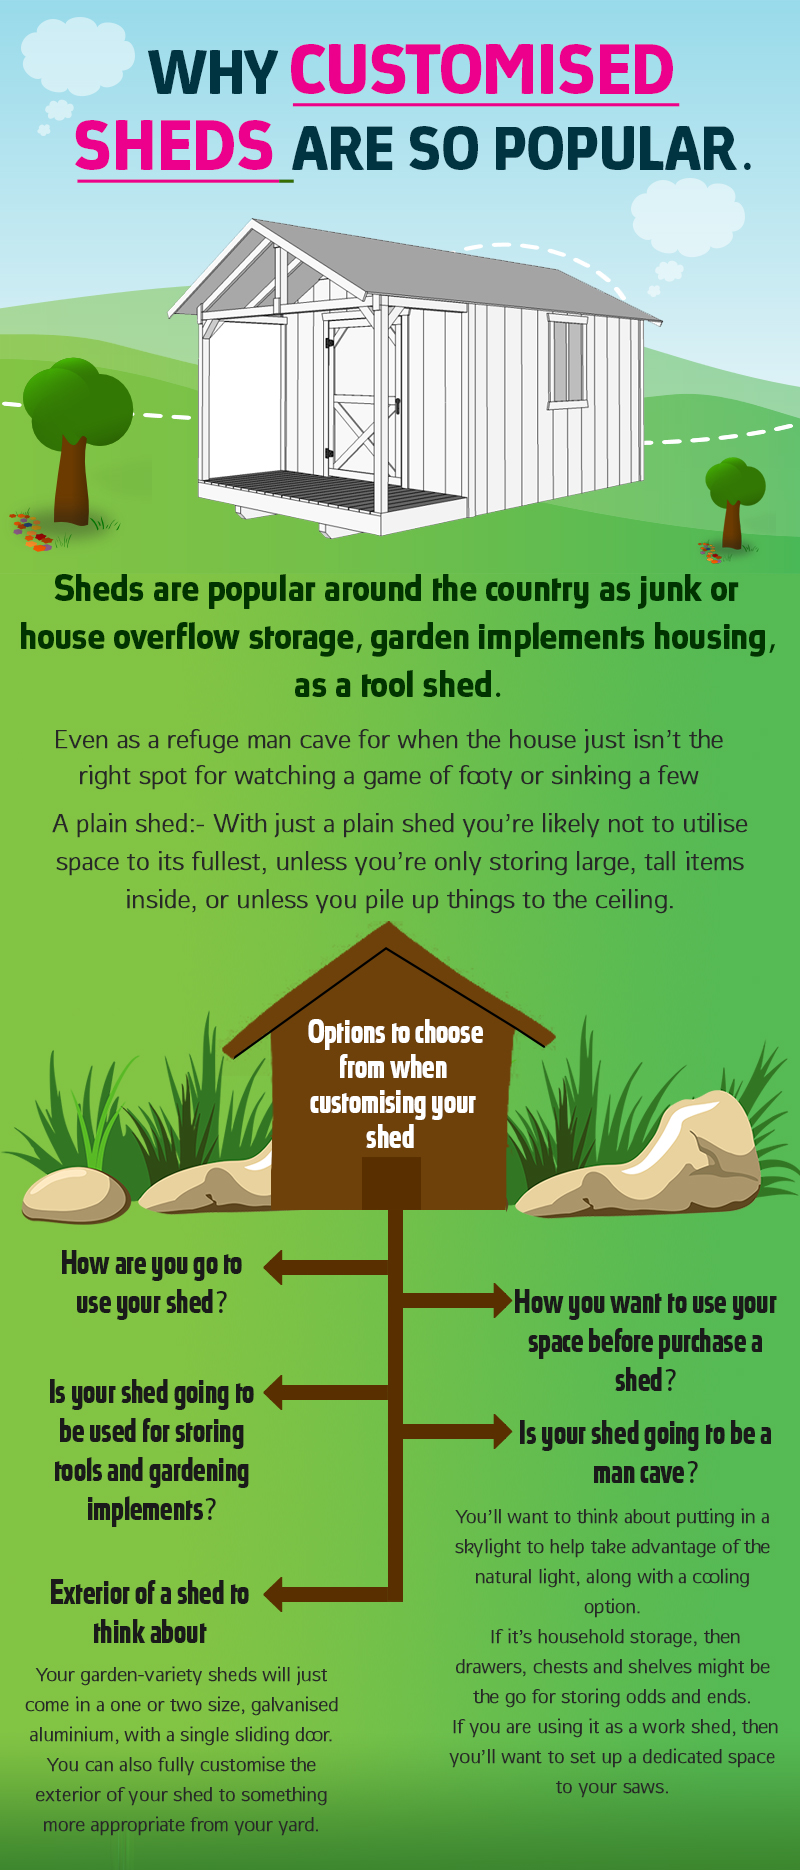 Why Customised Sheds Are So Popular